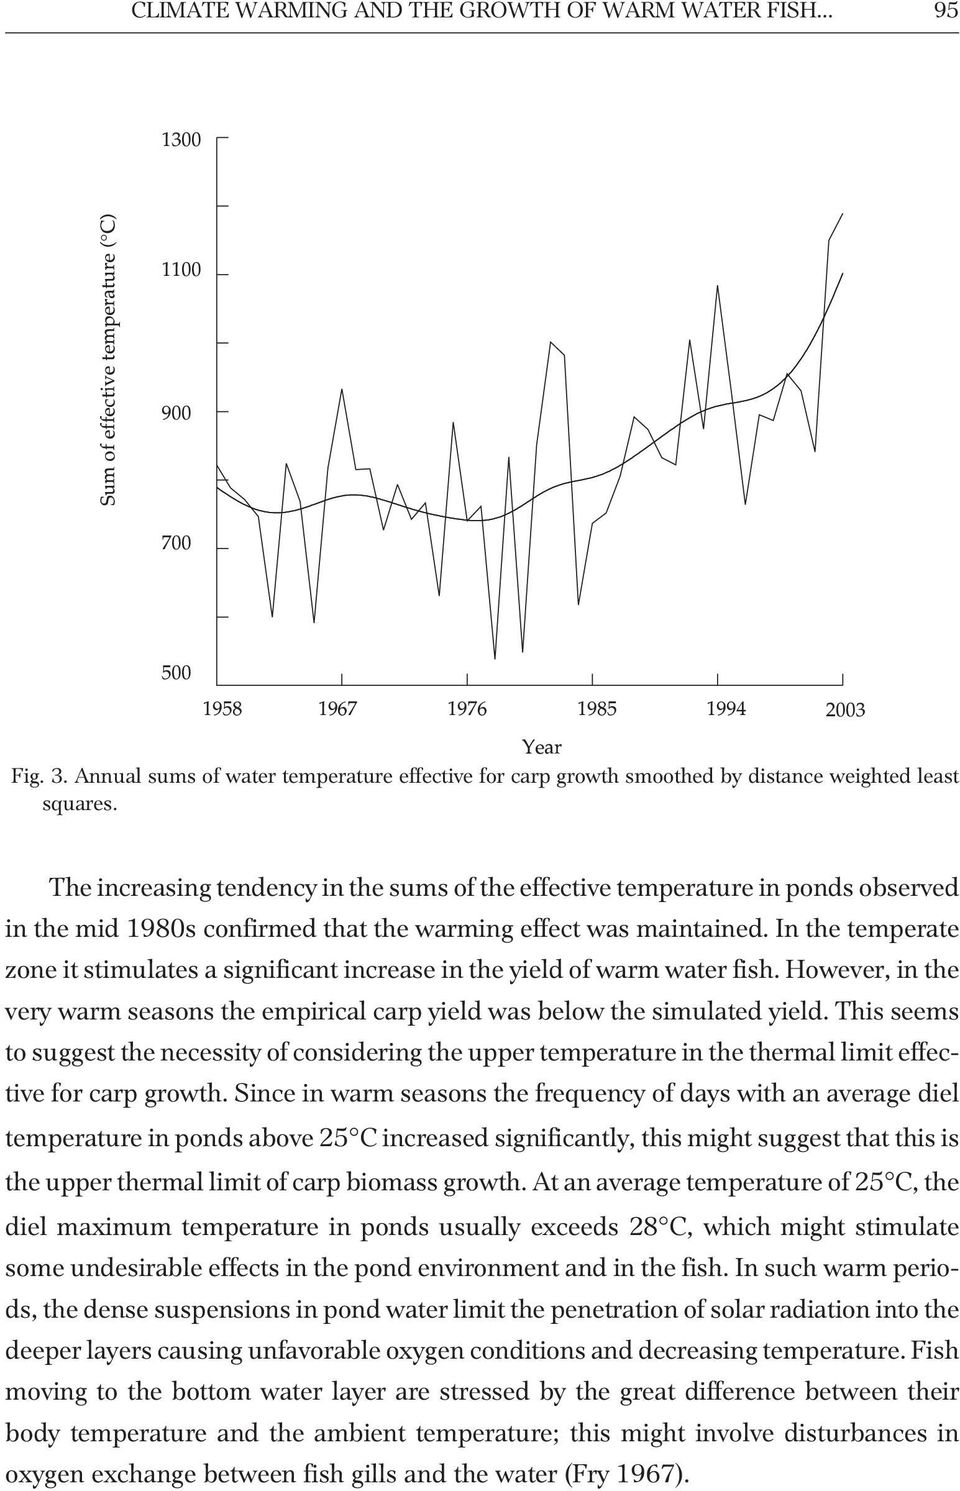 The increasing tendency in the sums of the effective temperature in ponds observed in the mid 1980s confirmed that the warming effect was maintained.